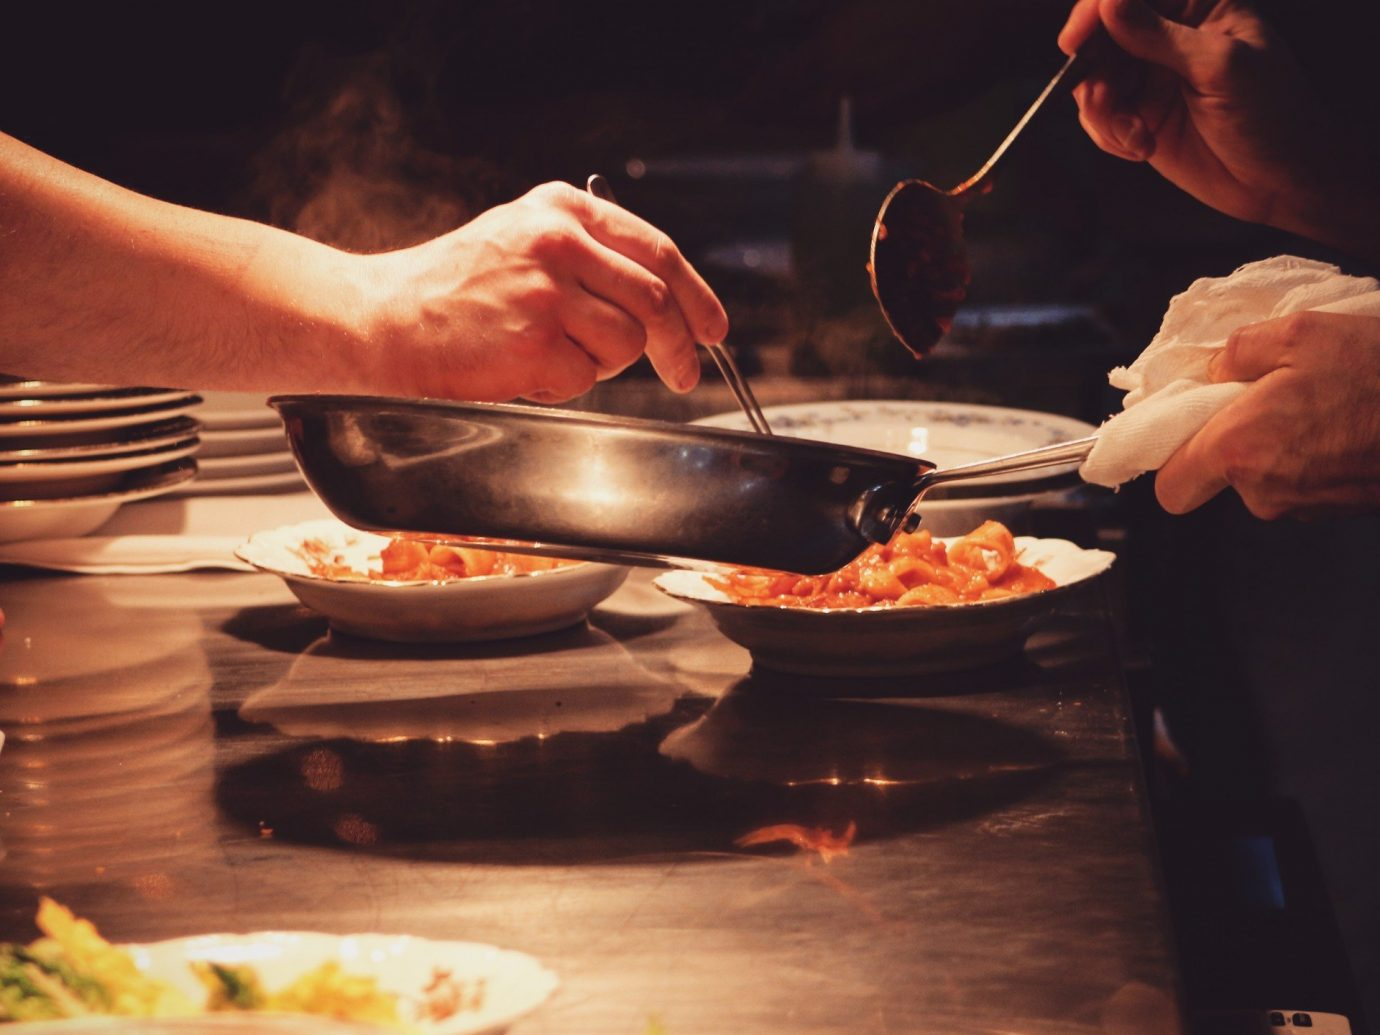 Food + Drink person food human action indoor dish meal cooking cuisine sense meat